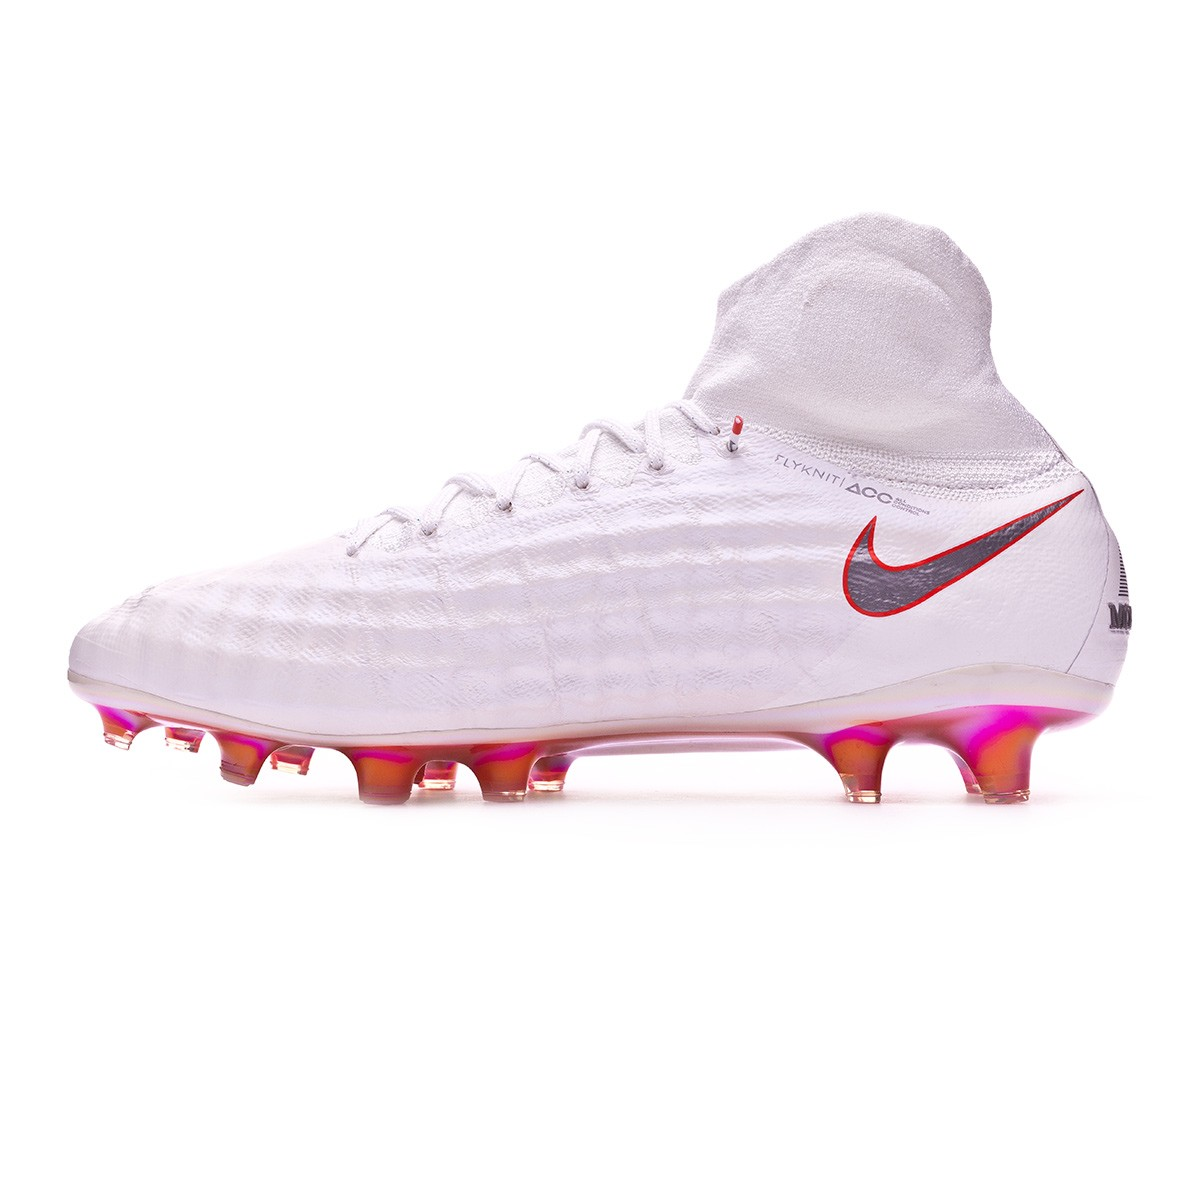 3fea0aa9e3fd Football Boots Nike Magista Obra II Elite DF FG White-Metallic cool  grey-Light crimson - Football store Fútbol Emotion